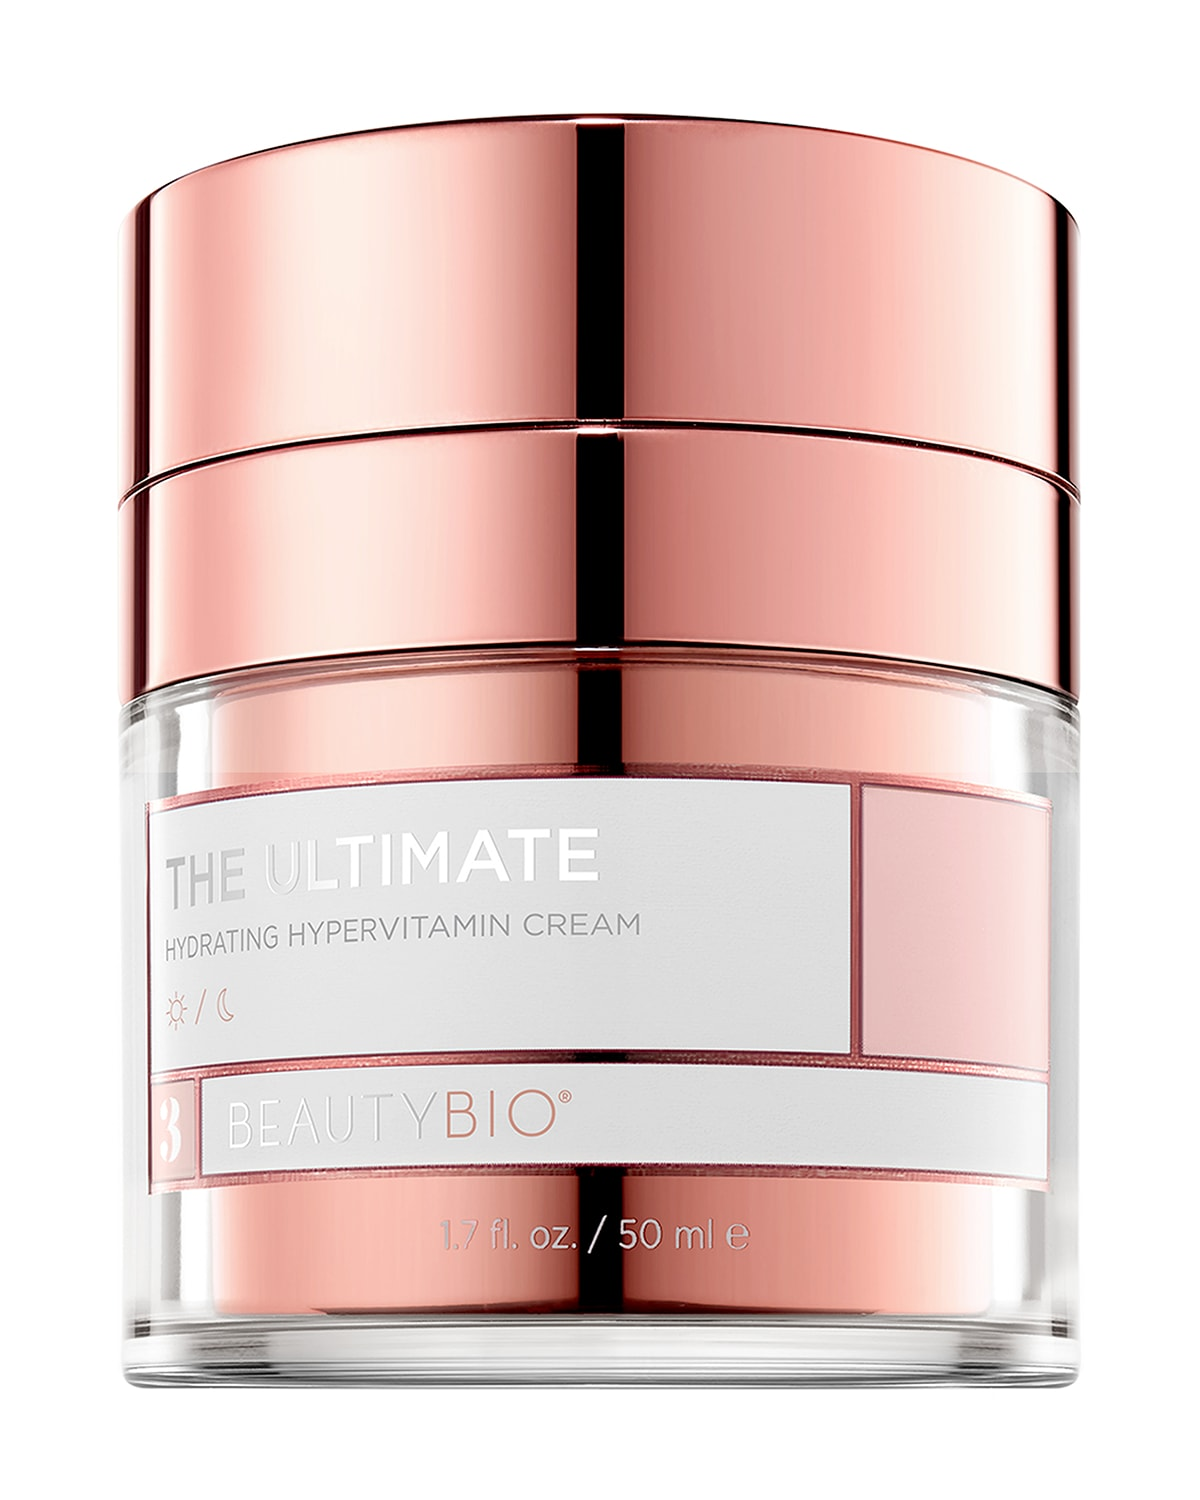 1.7 oz. THE ULTIMATE Hydrating HyperVitamin Cream